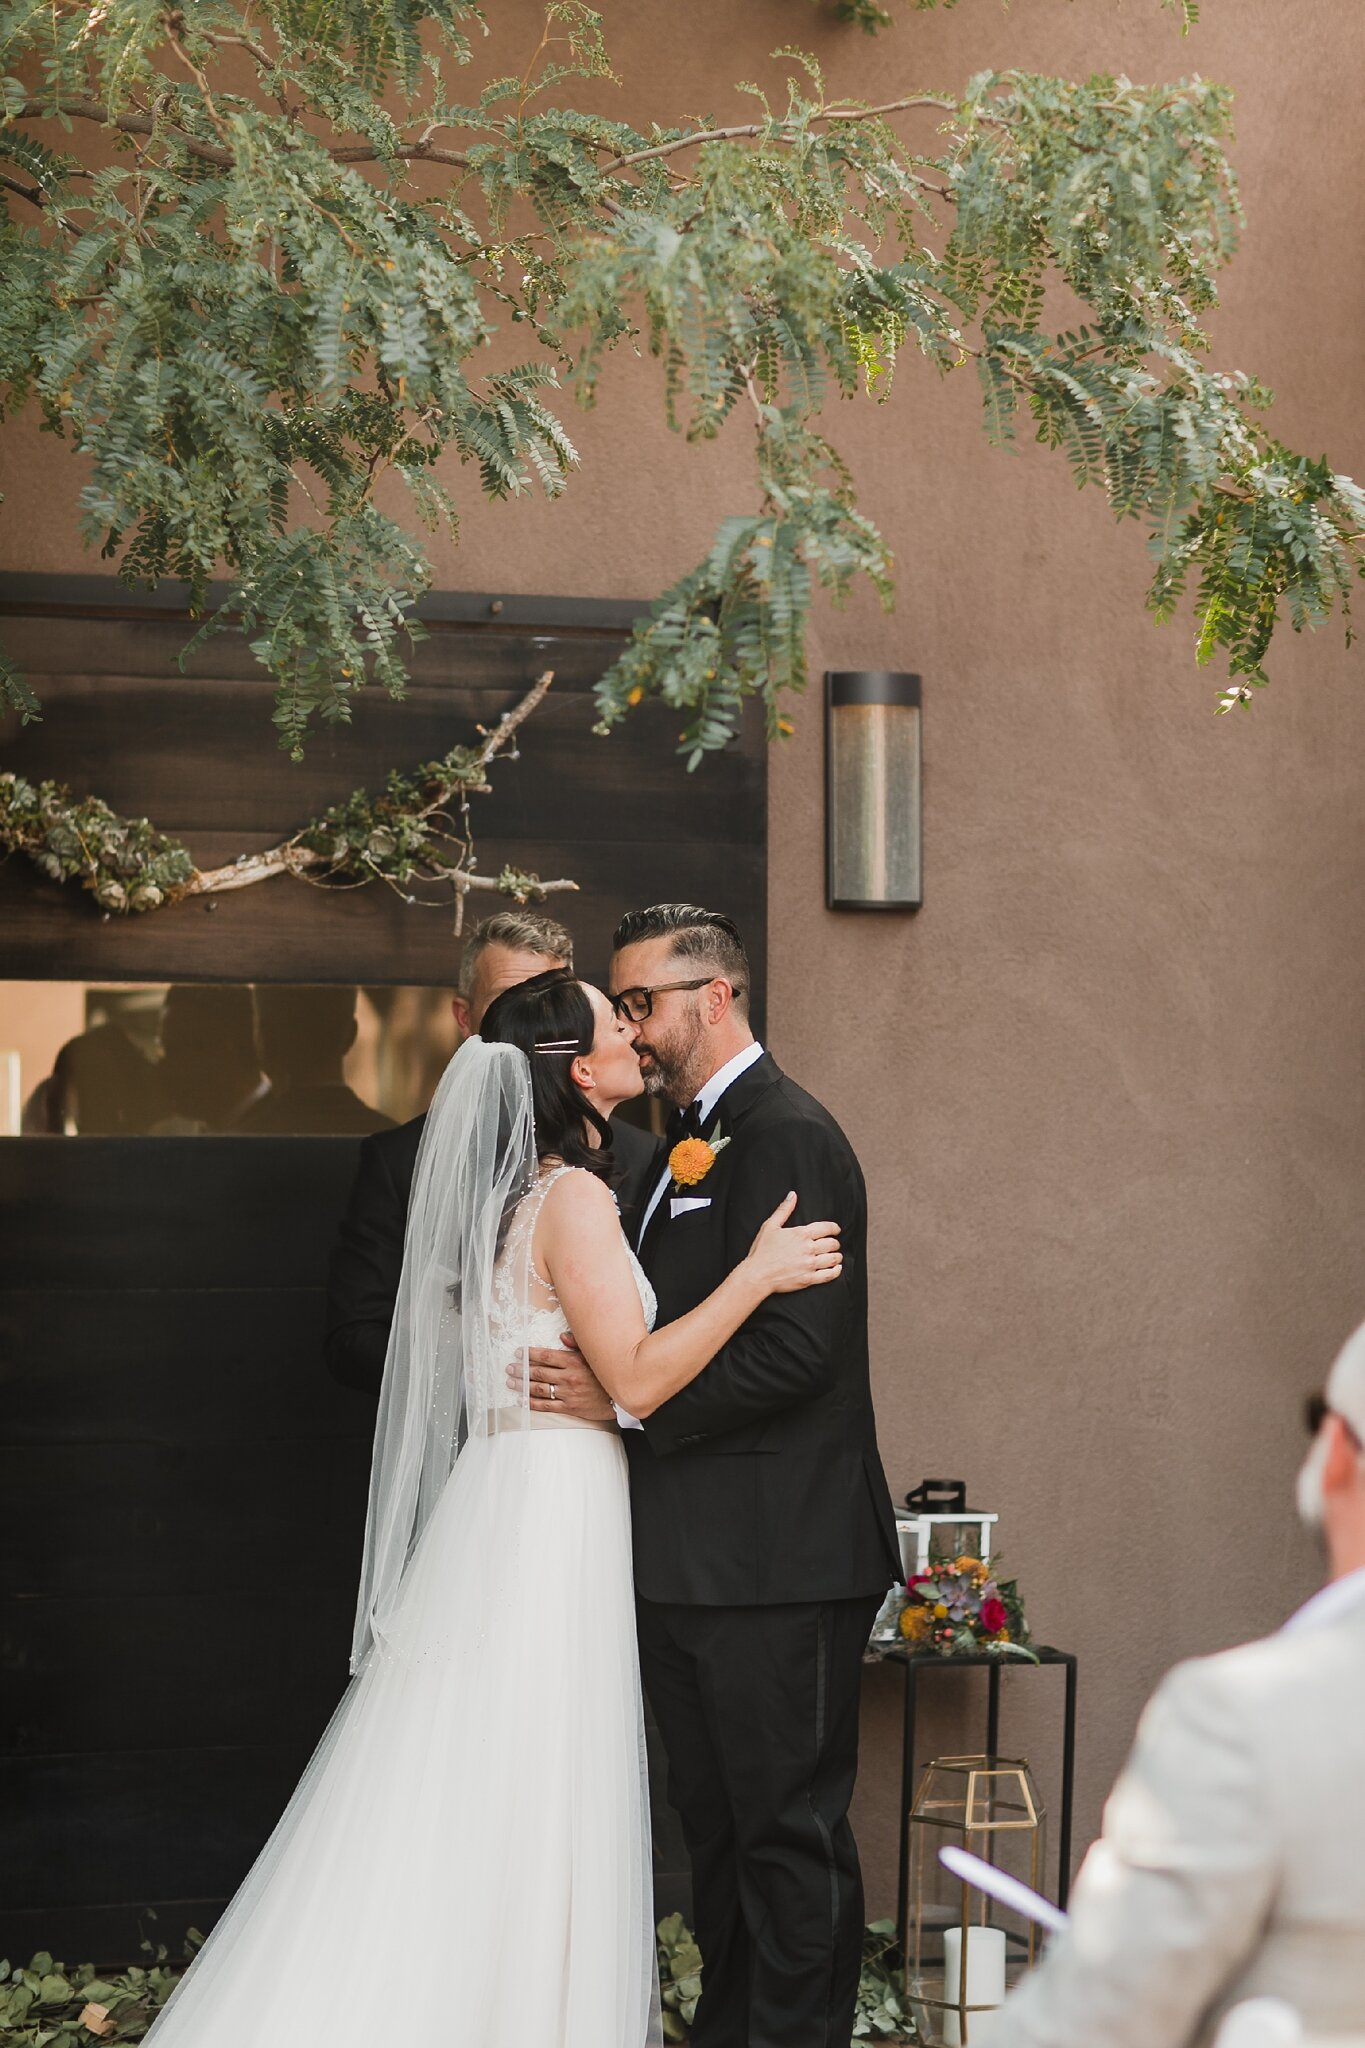 Alicia+lucia+photography+-+albuquerque+wedding+photographer+-+santa+fe+wedding+photography+-+new+mexico+wedding+photographer+-+new+mexico+wedding+-+bed+and+breakfast+wedding+-+sarabande+wedding+-+sarabande+bed+and+breakfast+wedding_0064.jpg